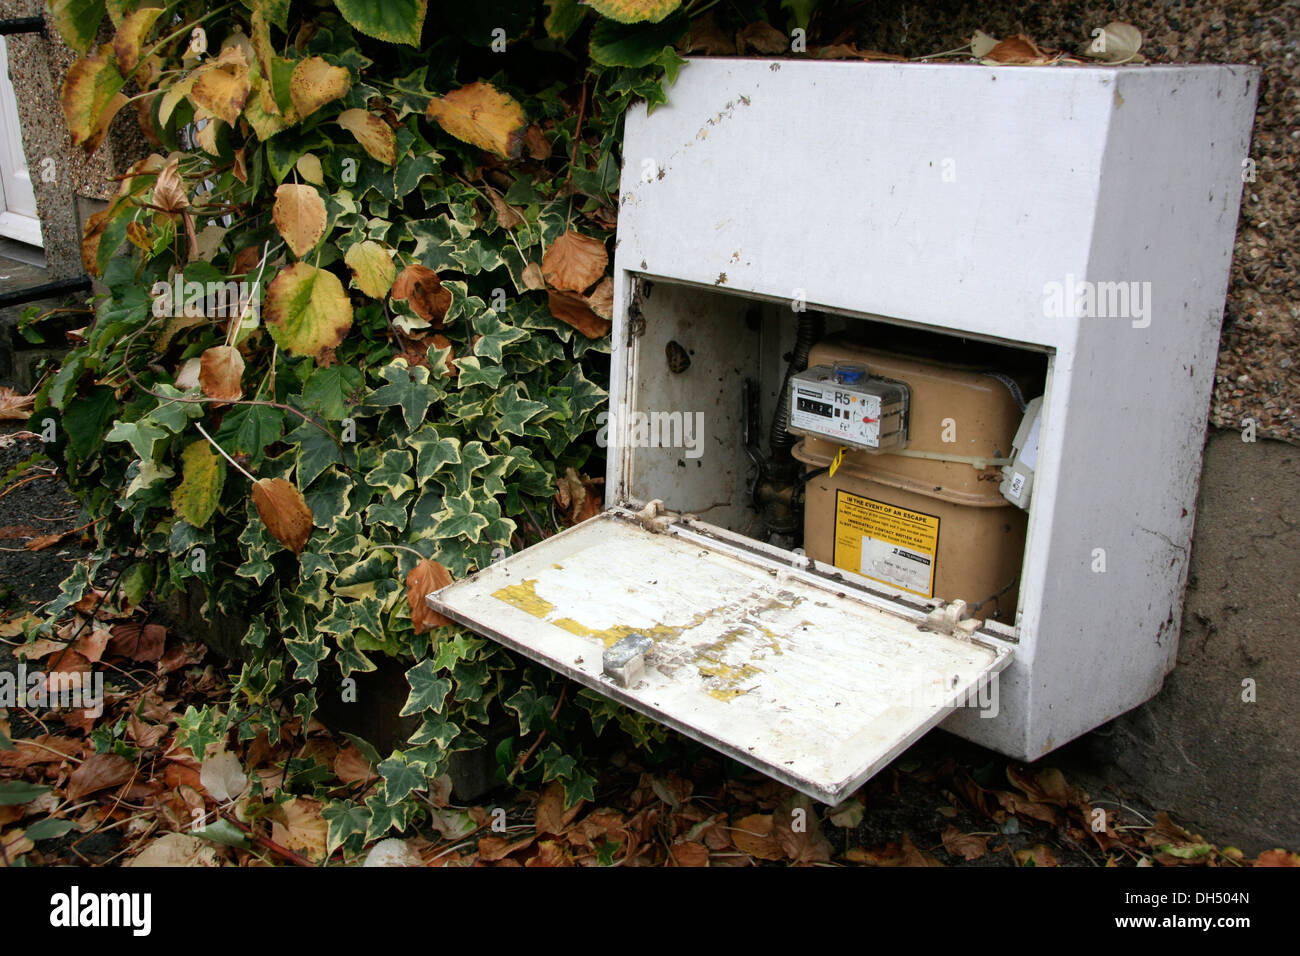 A uk gas meter opened and ready to be read during the Autumn Period - Stock Image